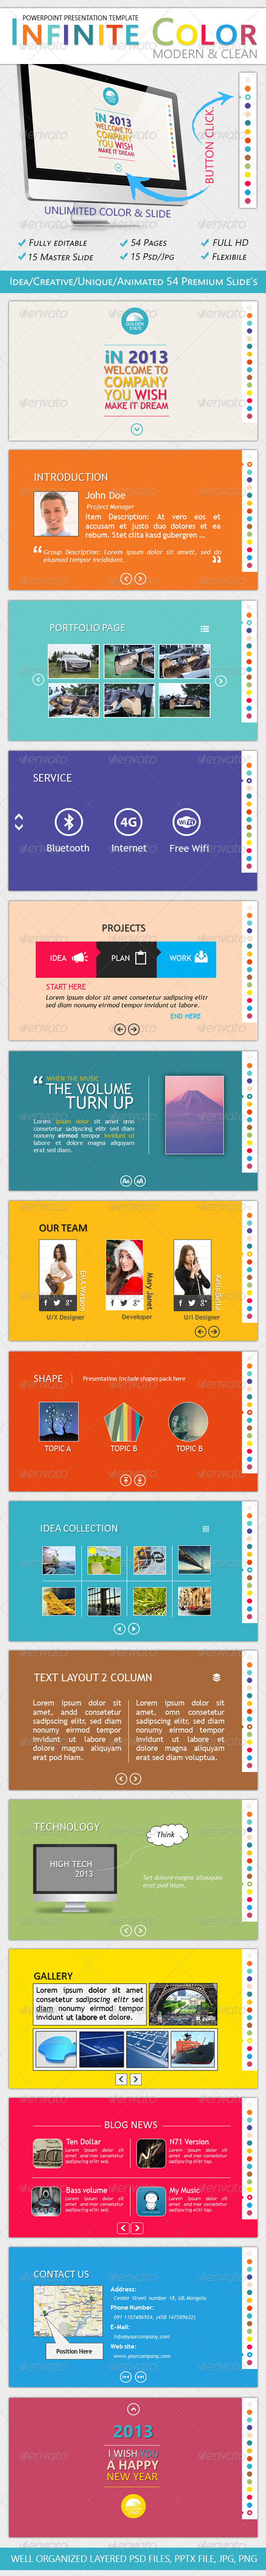 Infinite Color - Powerpoint Presentation Template - Creative Powerpoint Templates